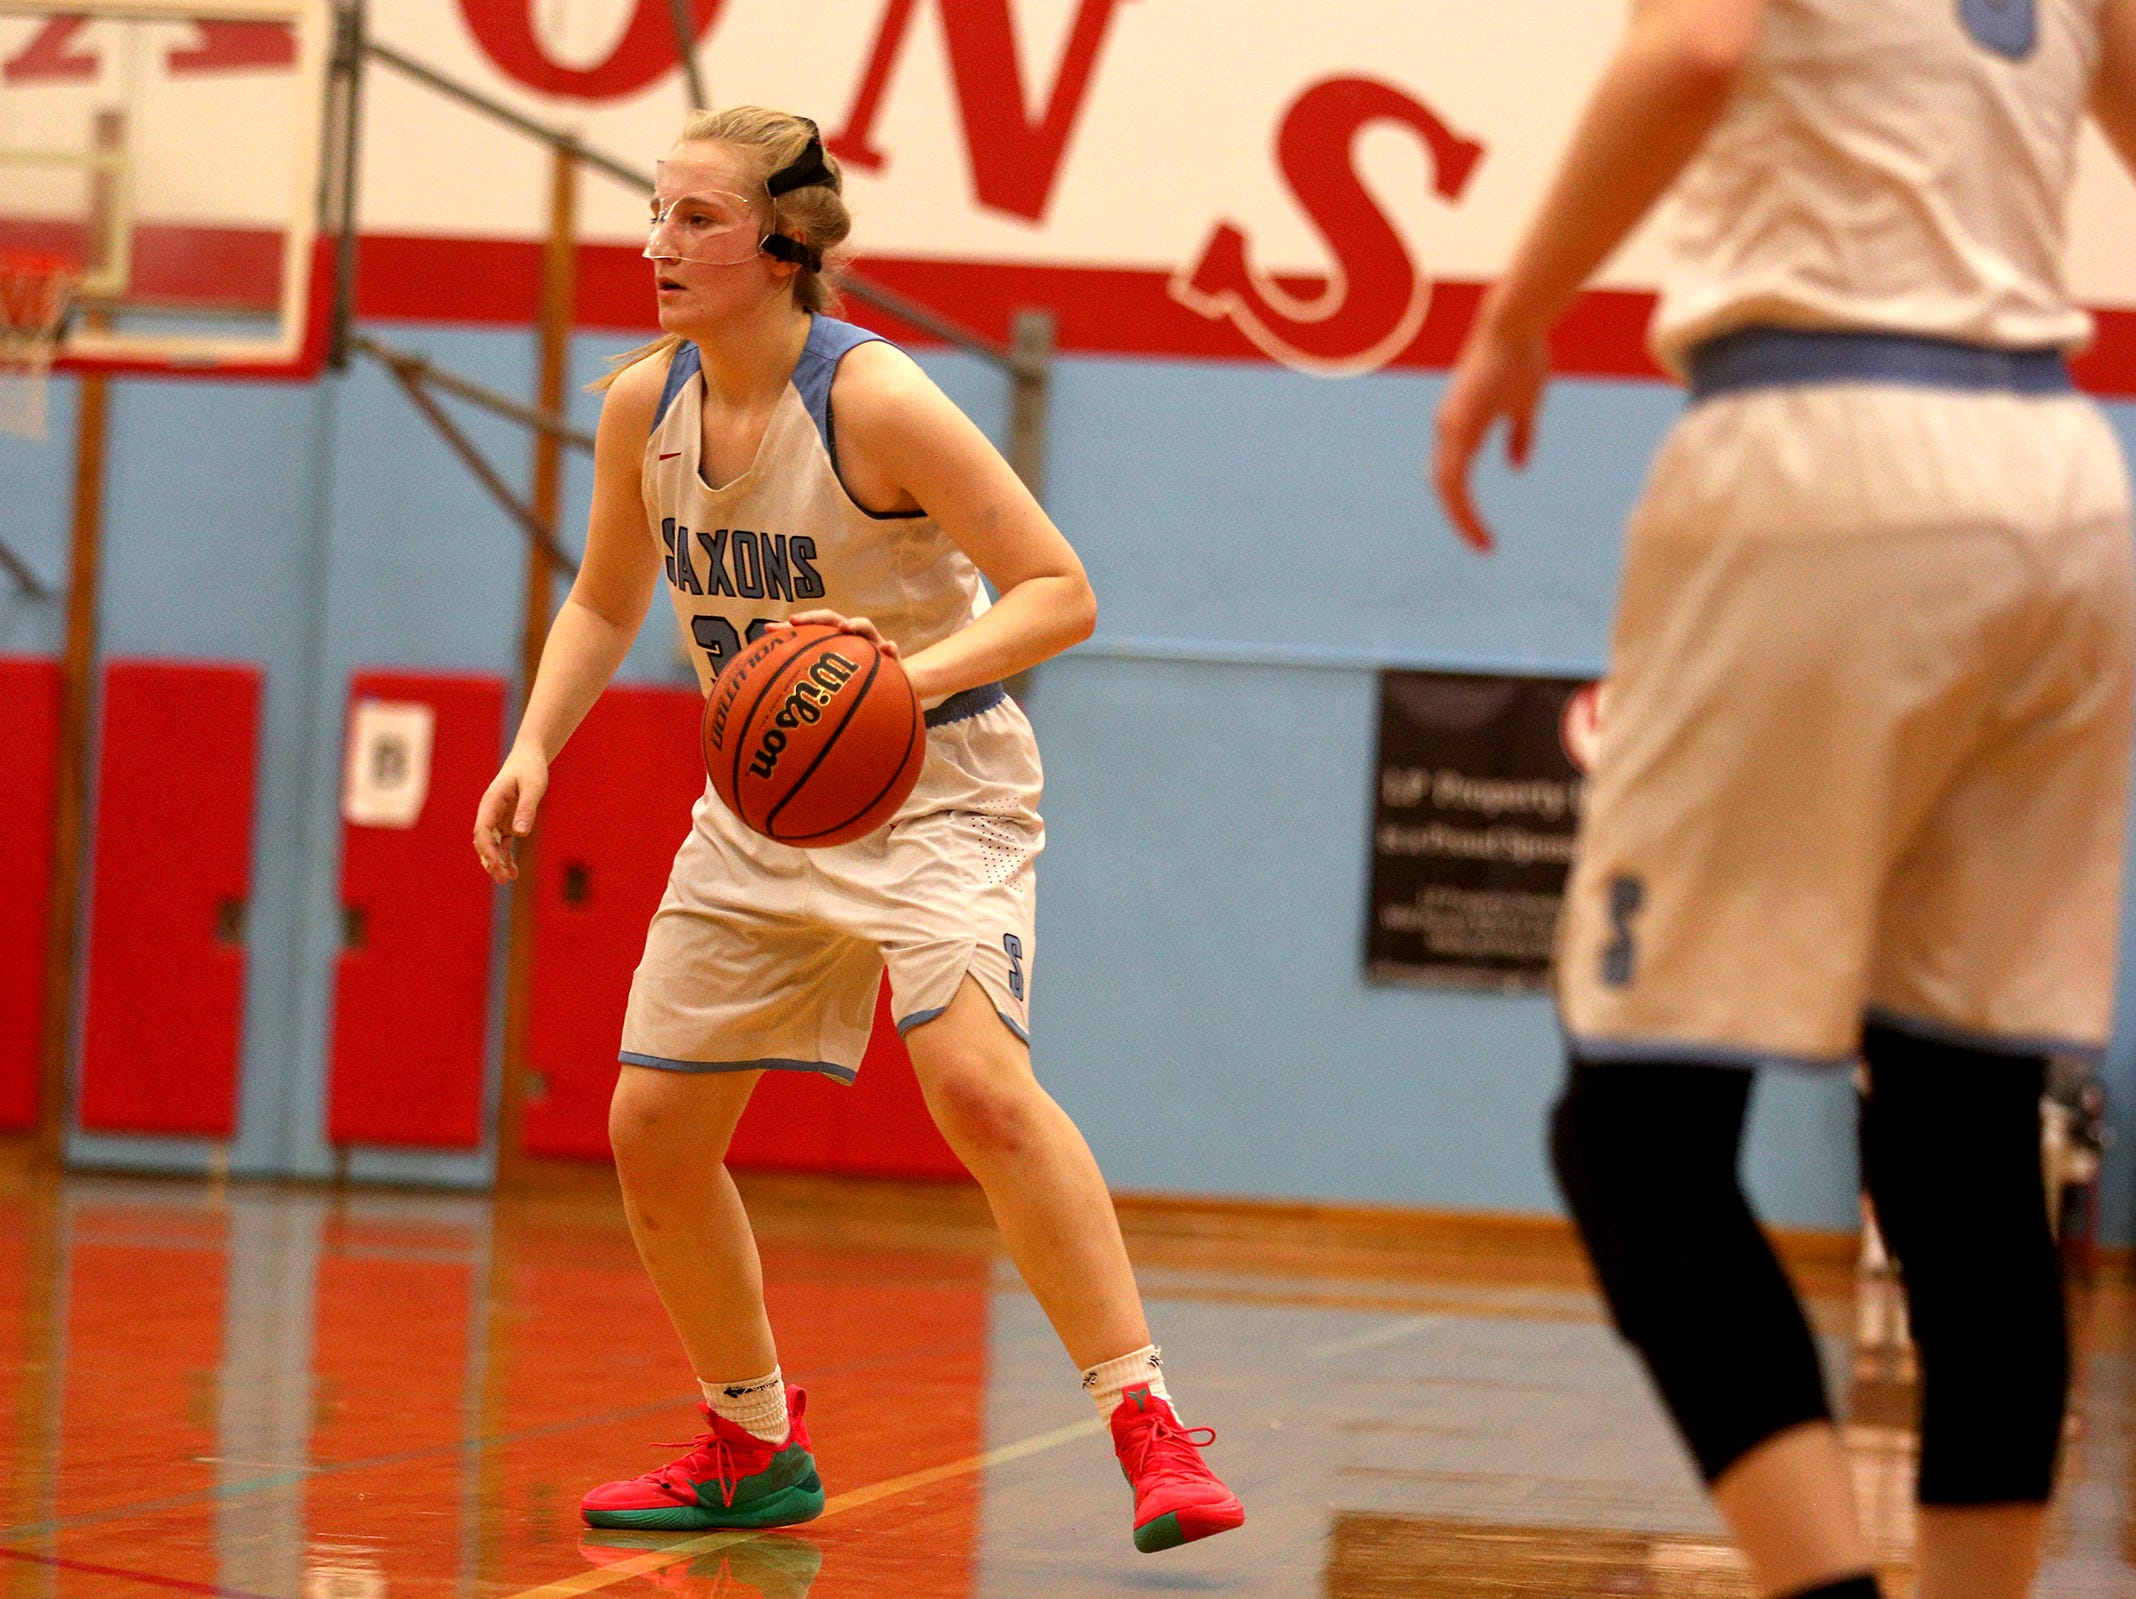 McNary's Gretchen Olsen (30) during the South Salem High School girls basketball game against McNary High School in Salem on Thursday, Jan. 31, 2019.